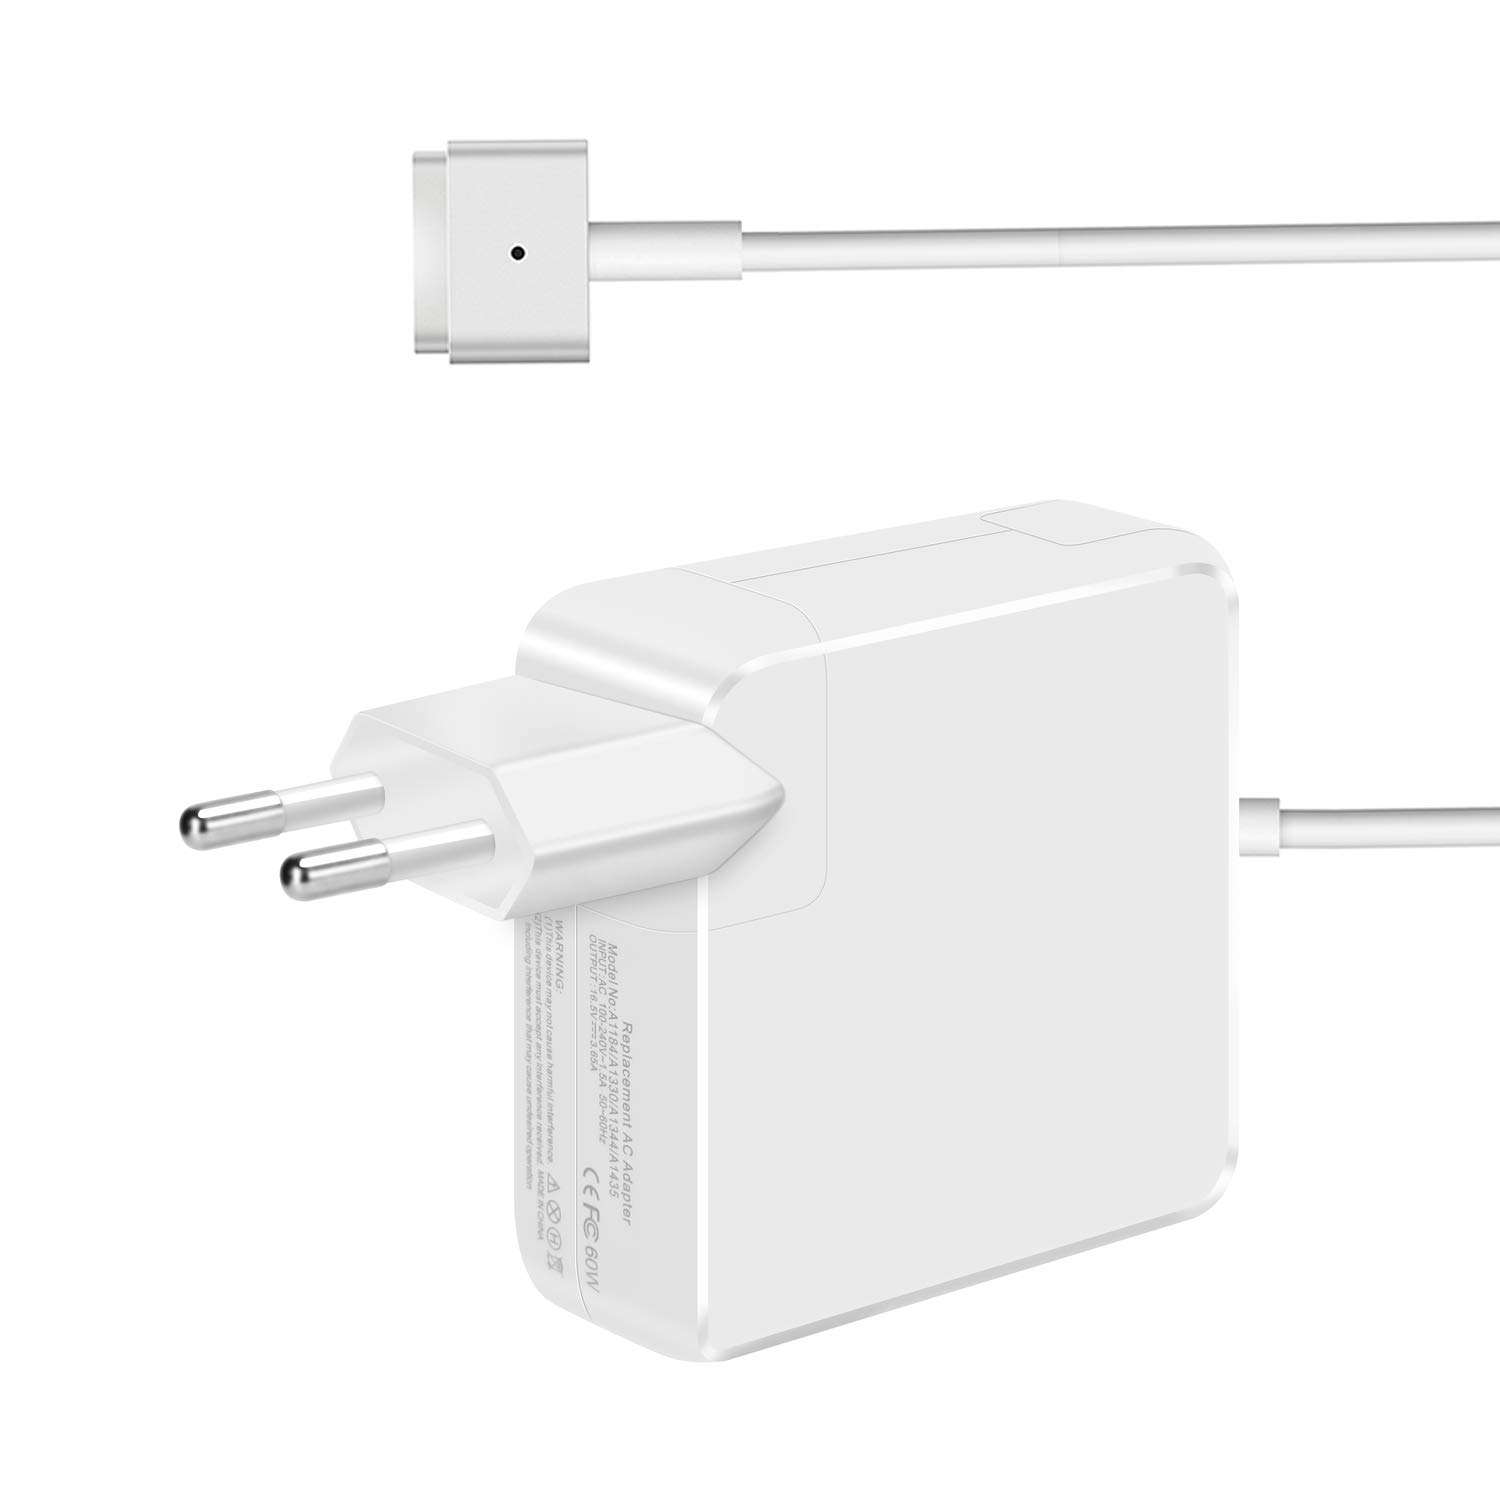 EU Macbook charger